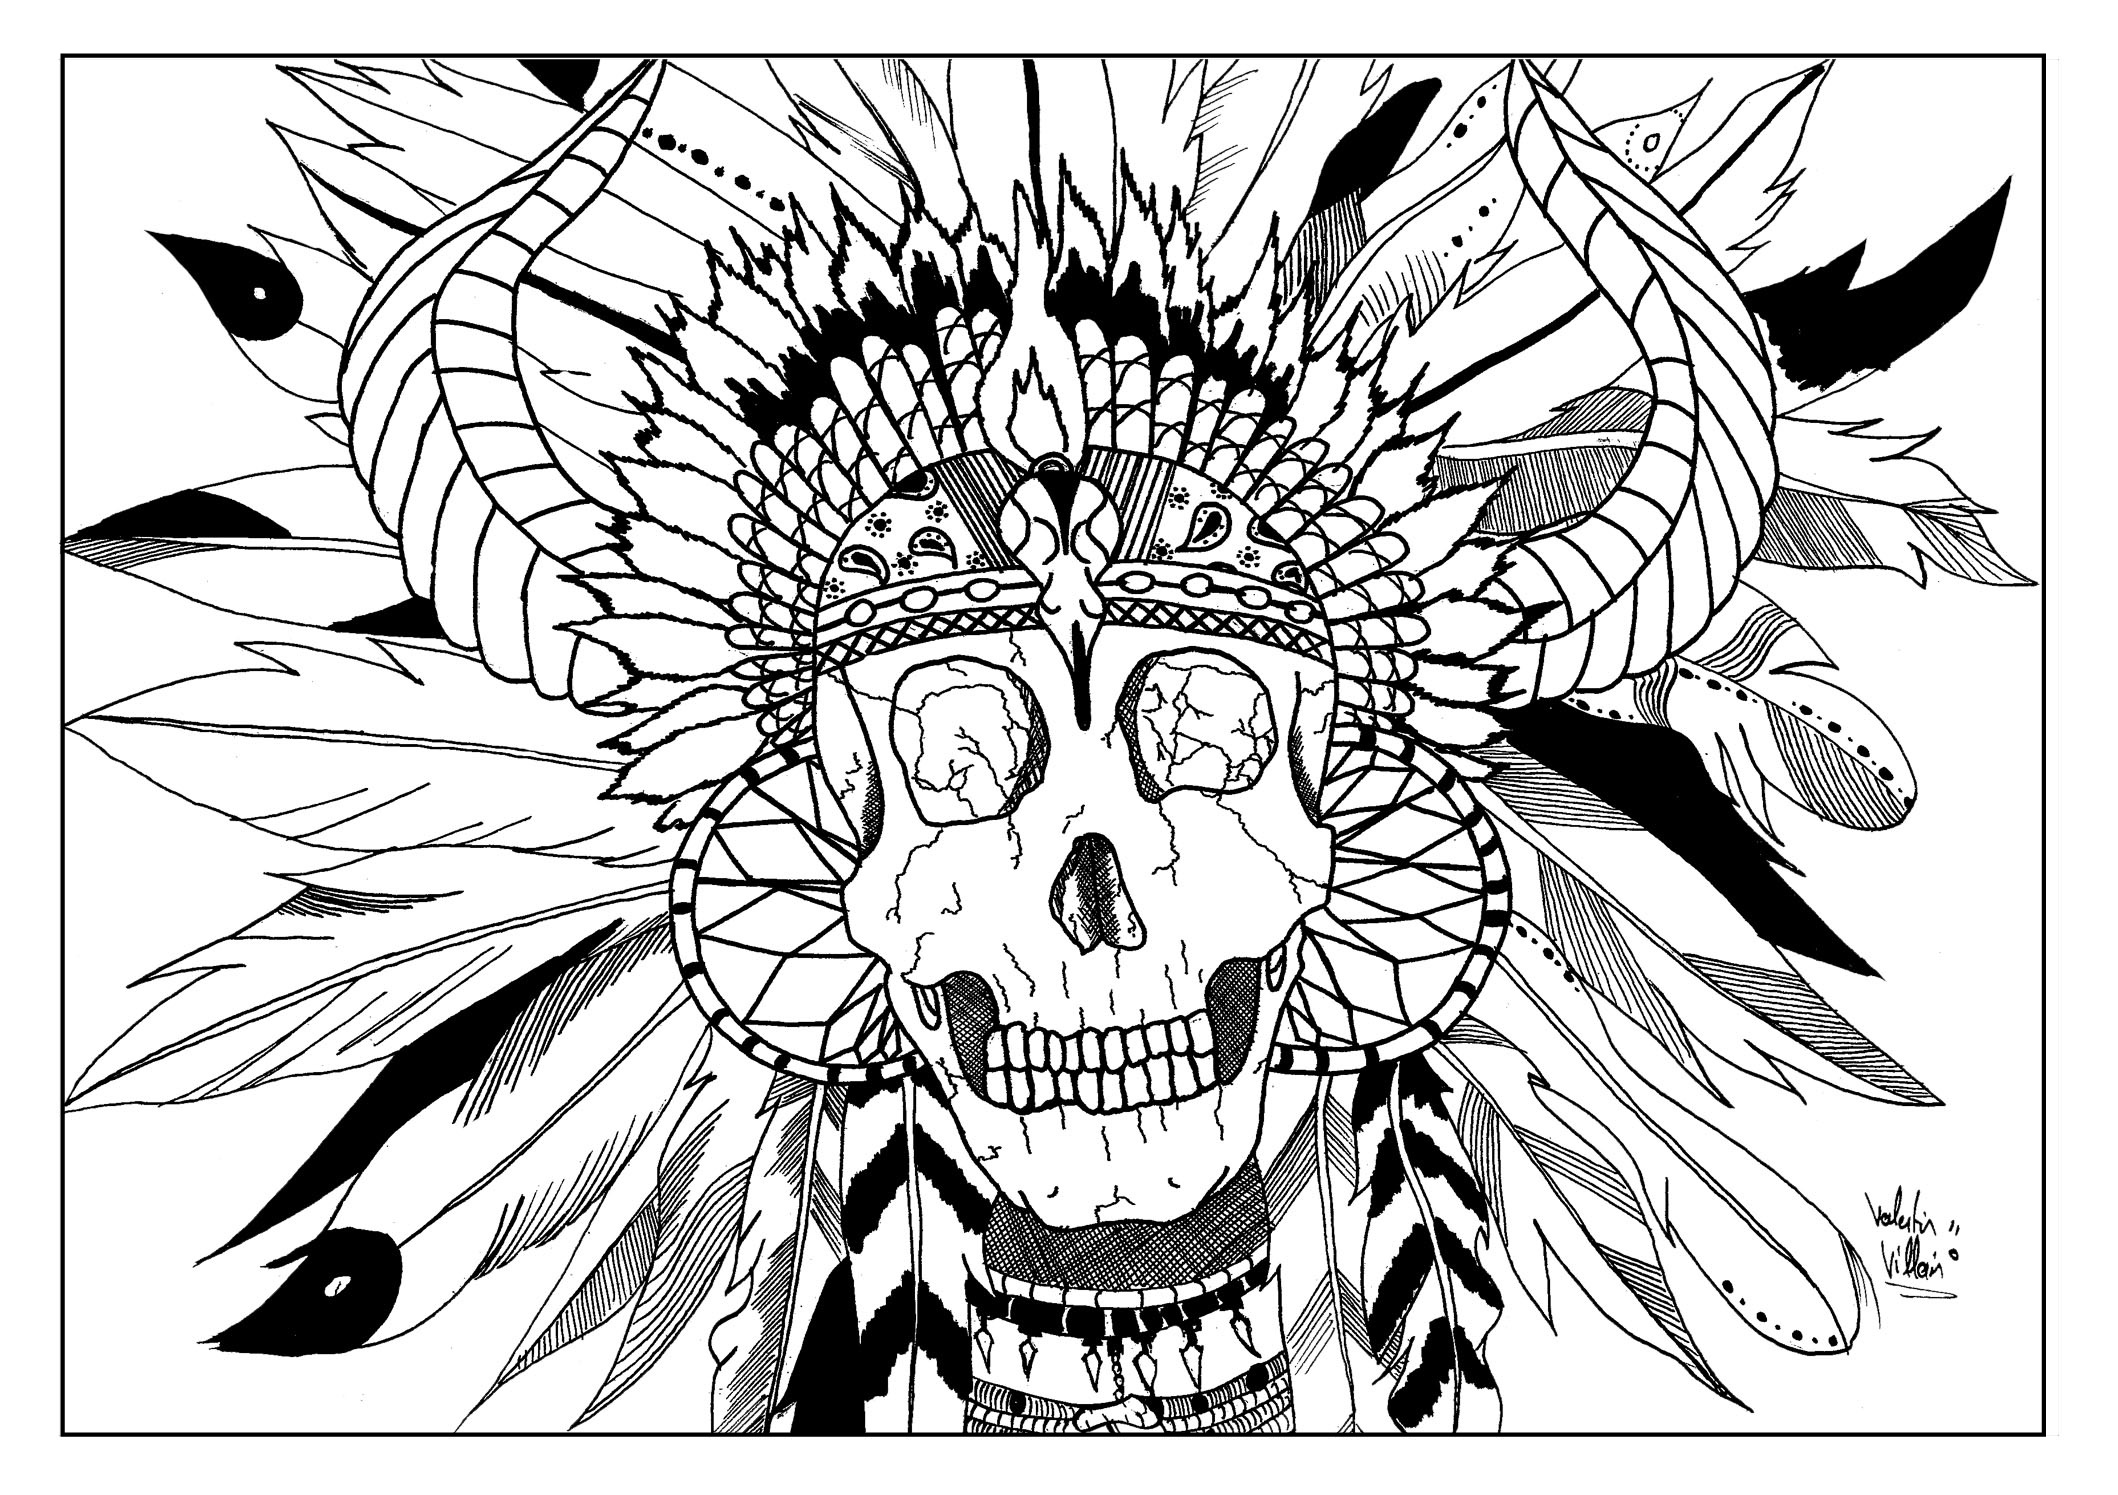 free native american indian coloring pages indian coloring pages free download on clipartmag pages indian american free coloring native